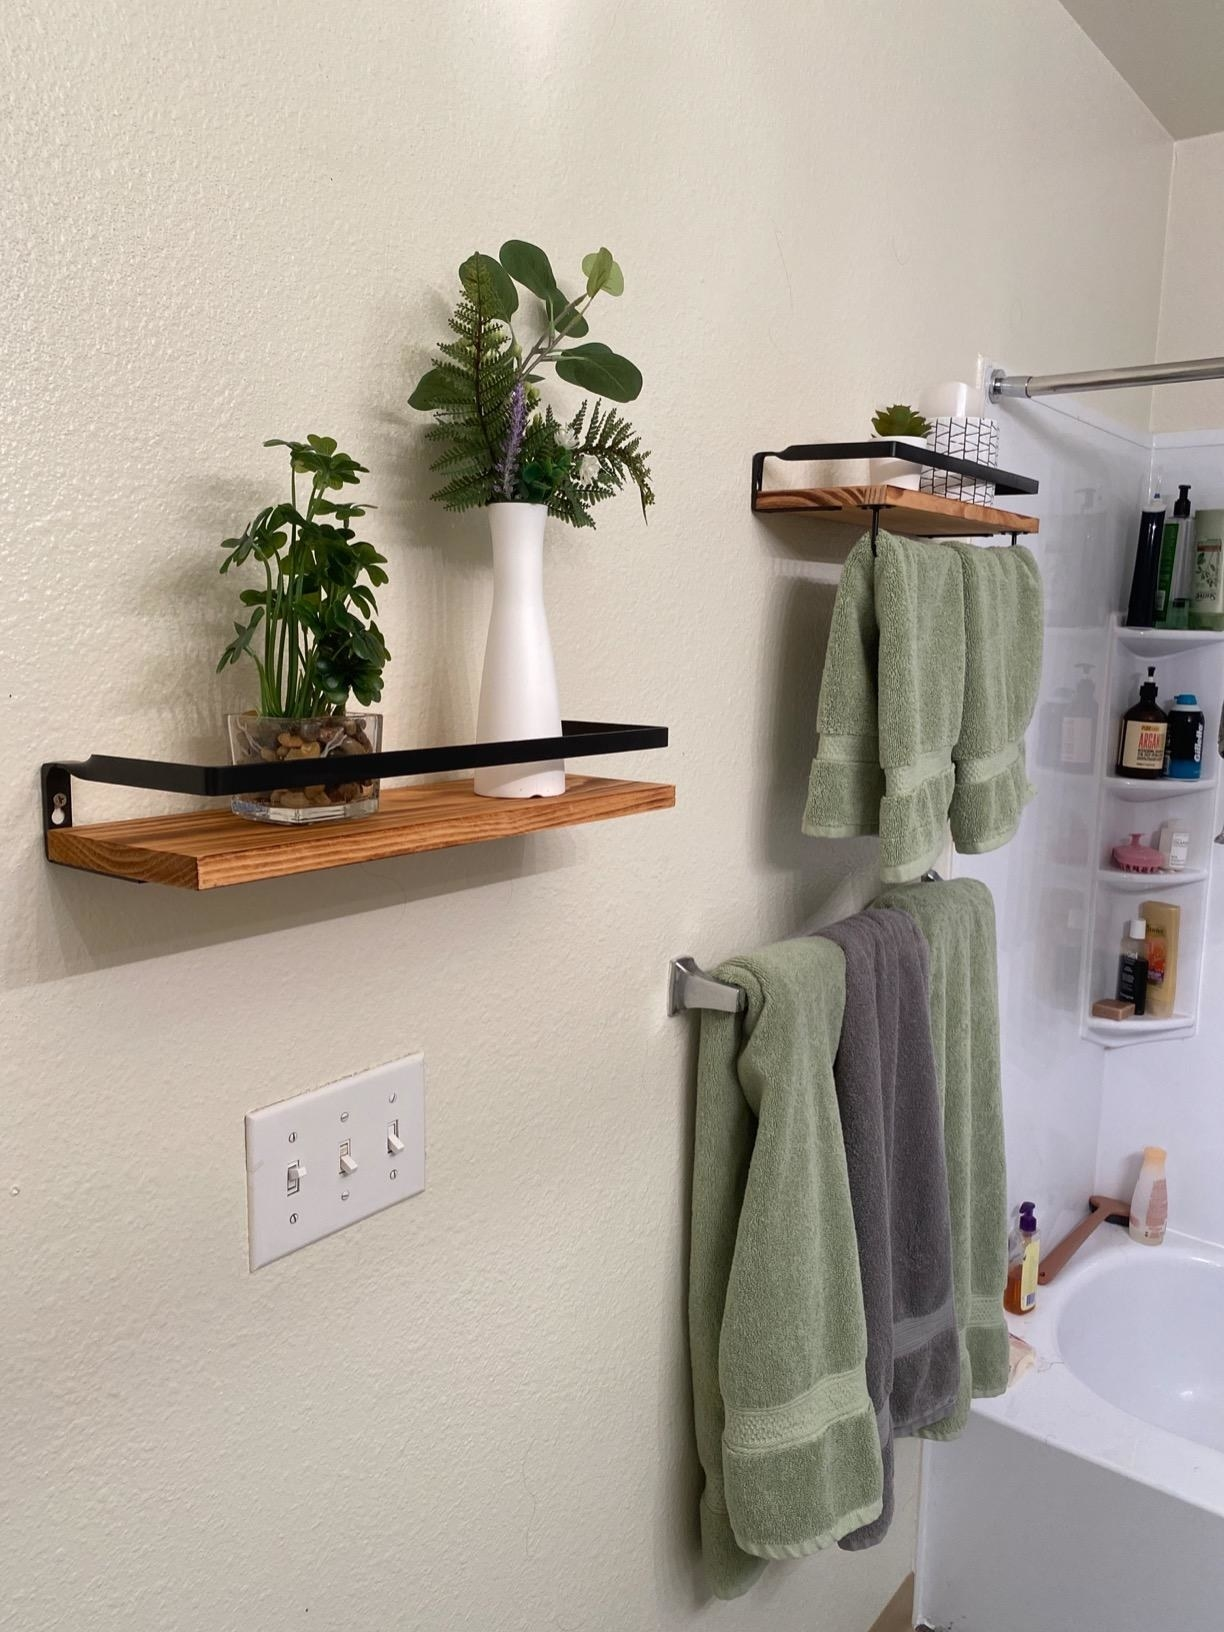 Brown floating shelves with white plant vases and green towels hanging below